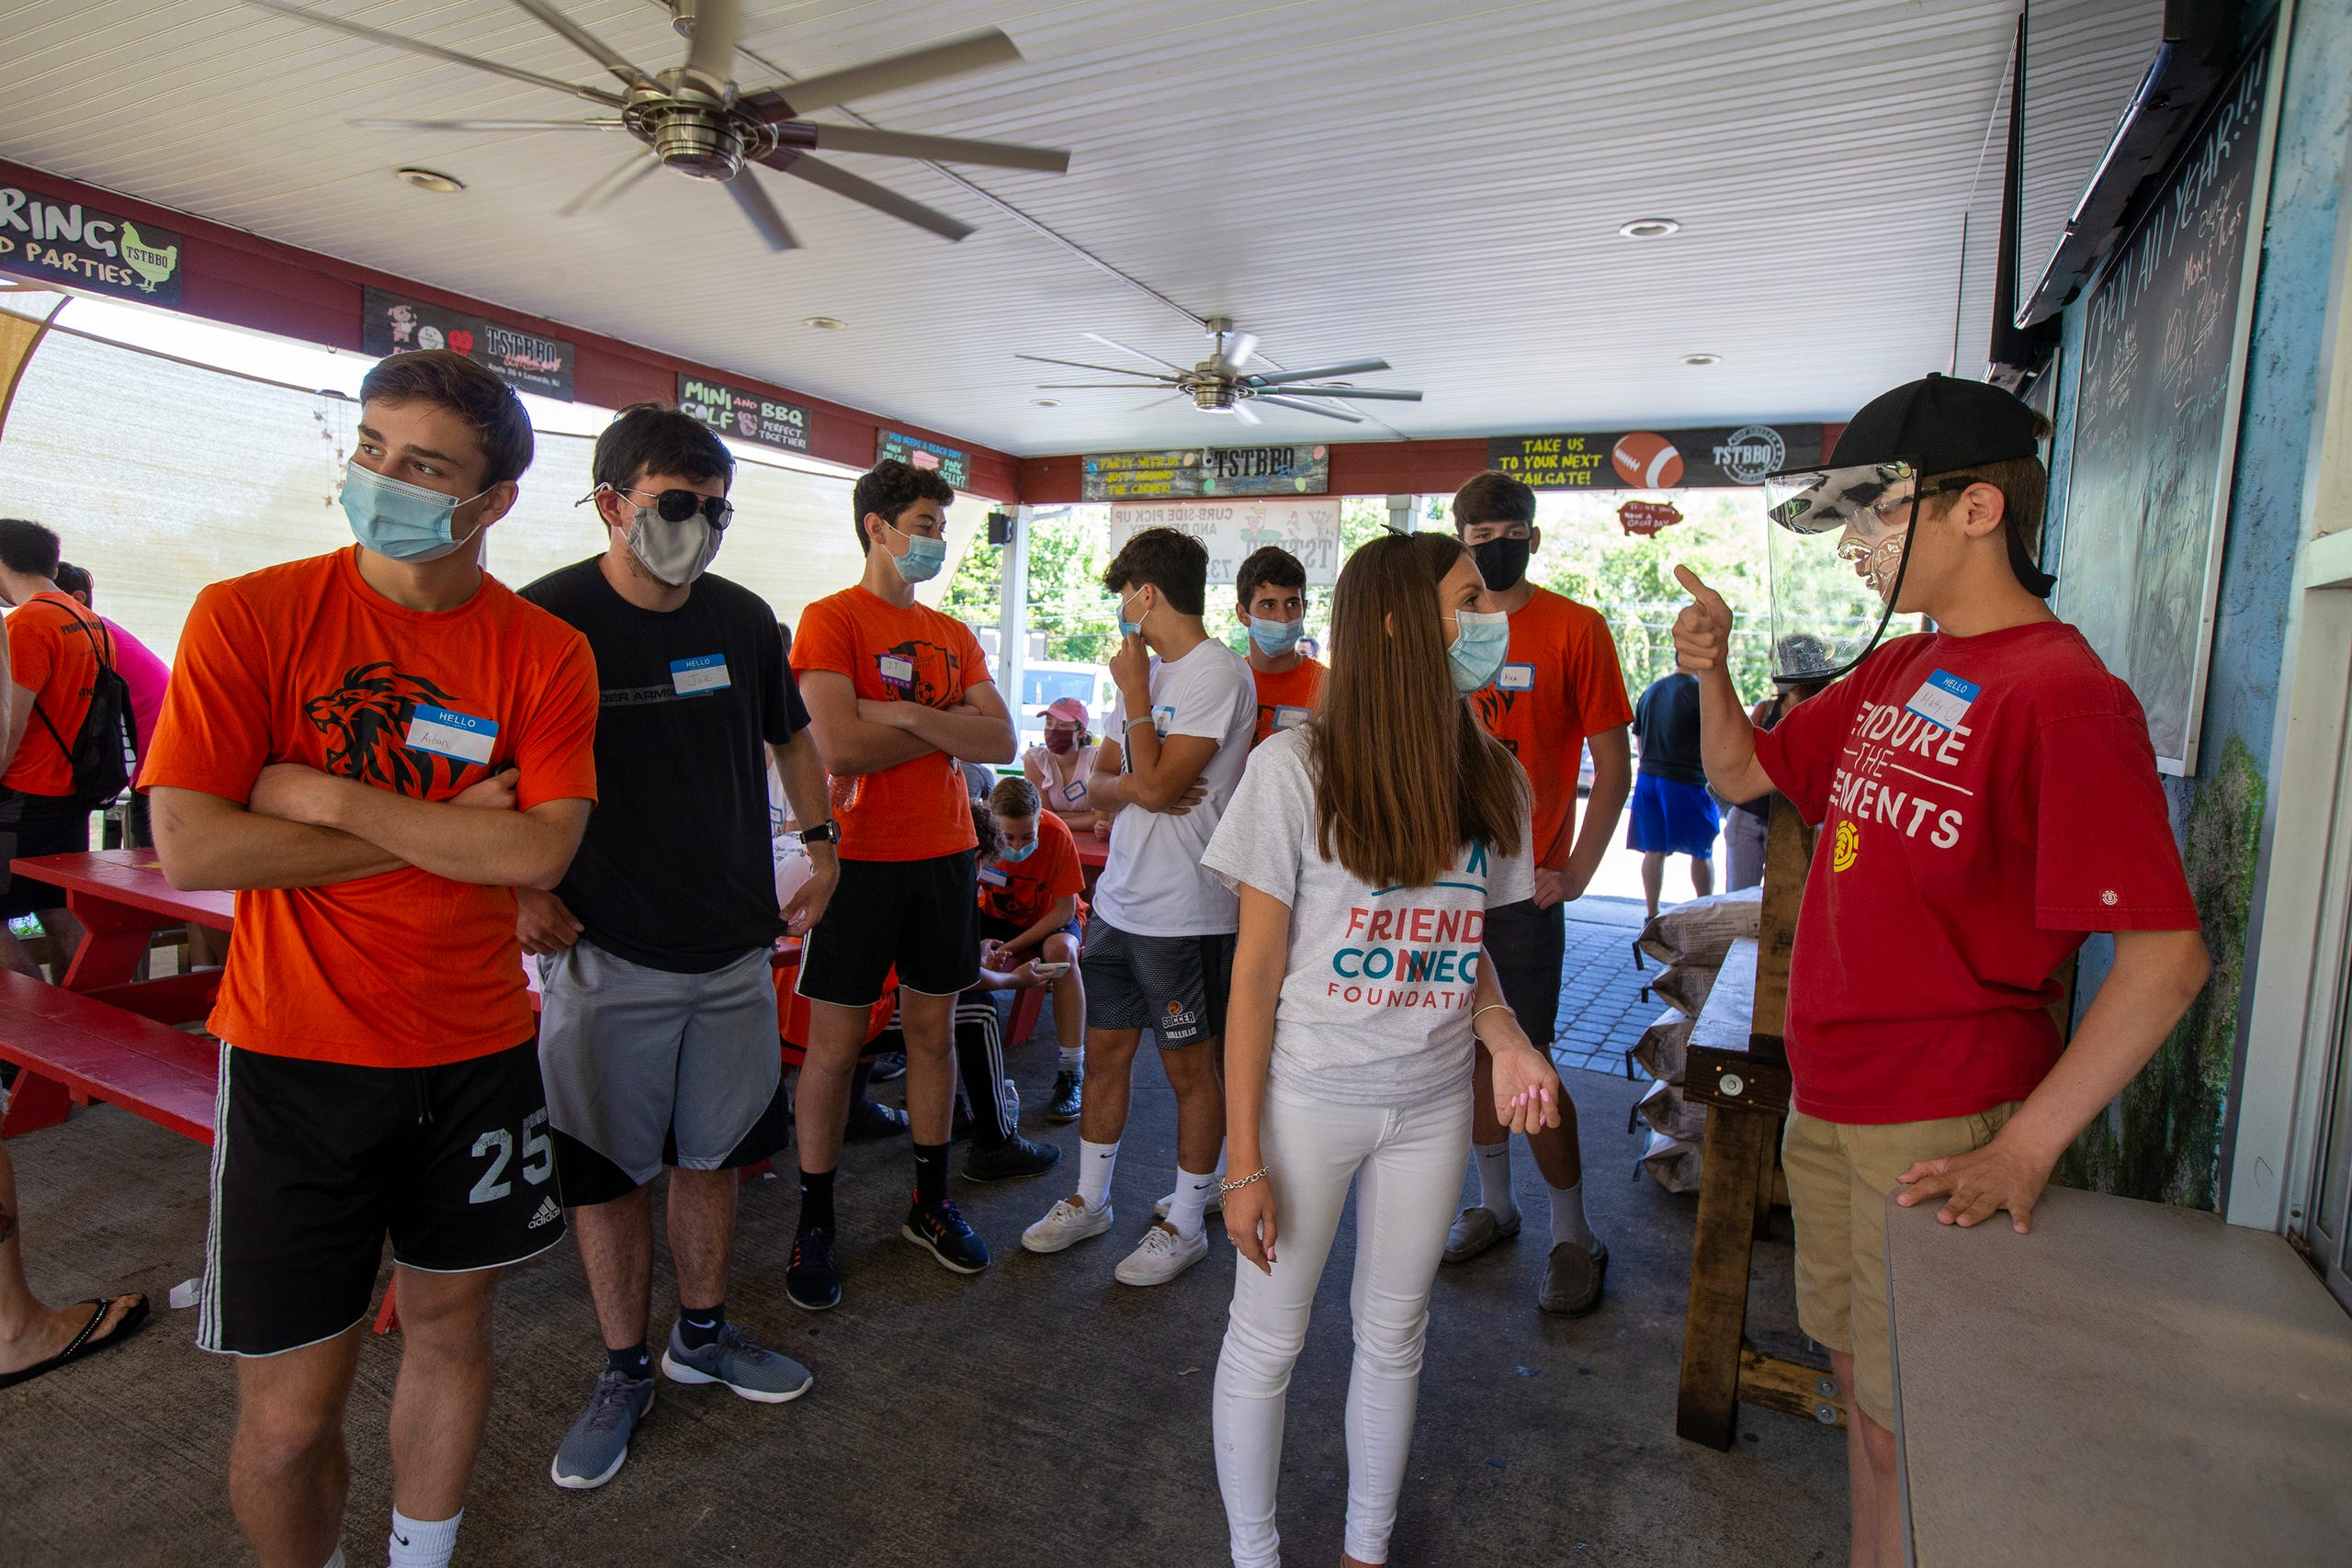 (center Sophia Ziajski, 19 of Middletown,  who runs the Friends Connect Foundation, introduces (right) Matty Driscoll, 16, of Fair Haven to members of the Middletown North boys soccer team before playing mini-golf as part of Friends Connect Foundation at TST BBQ & Mini Golf in Middletown, NJ Tuesday, August 18, 2020.